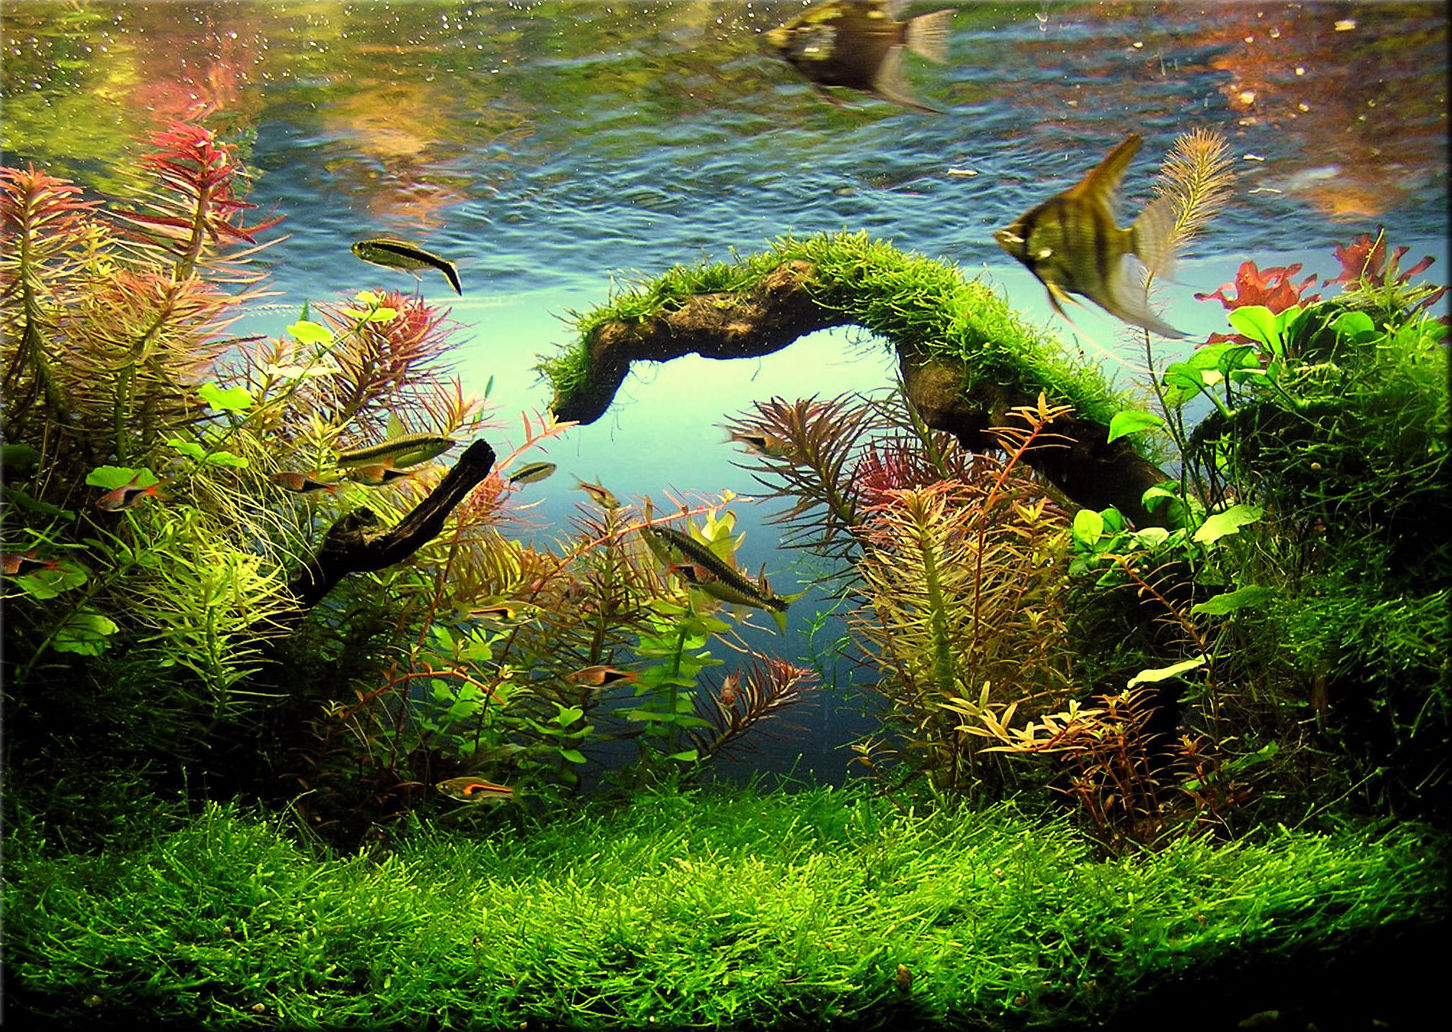 Les plantes de l 39 aquarium mur v g tal et aquariums for Aquarium interieur